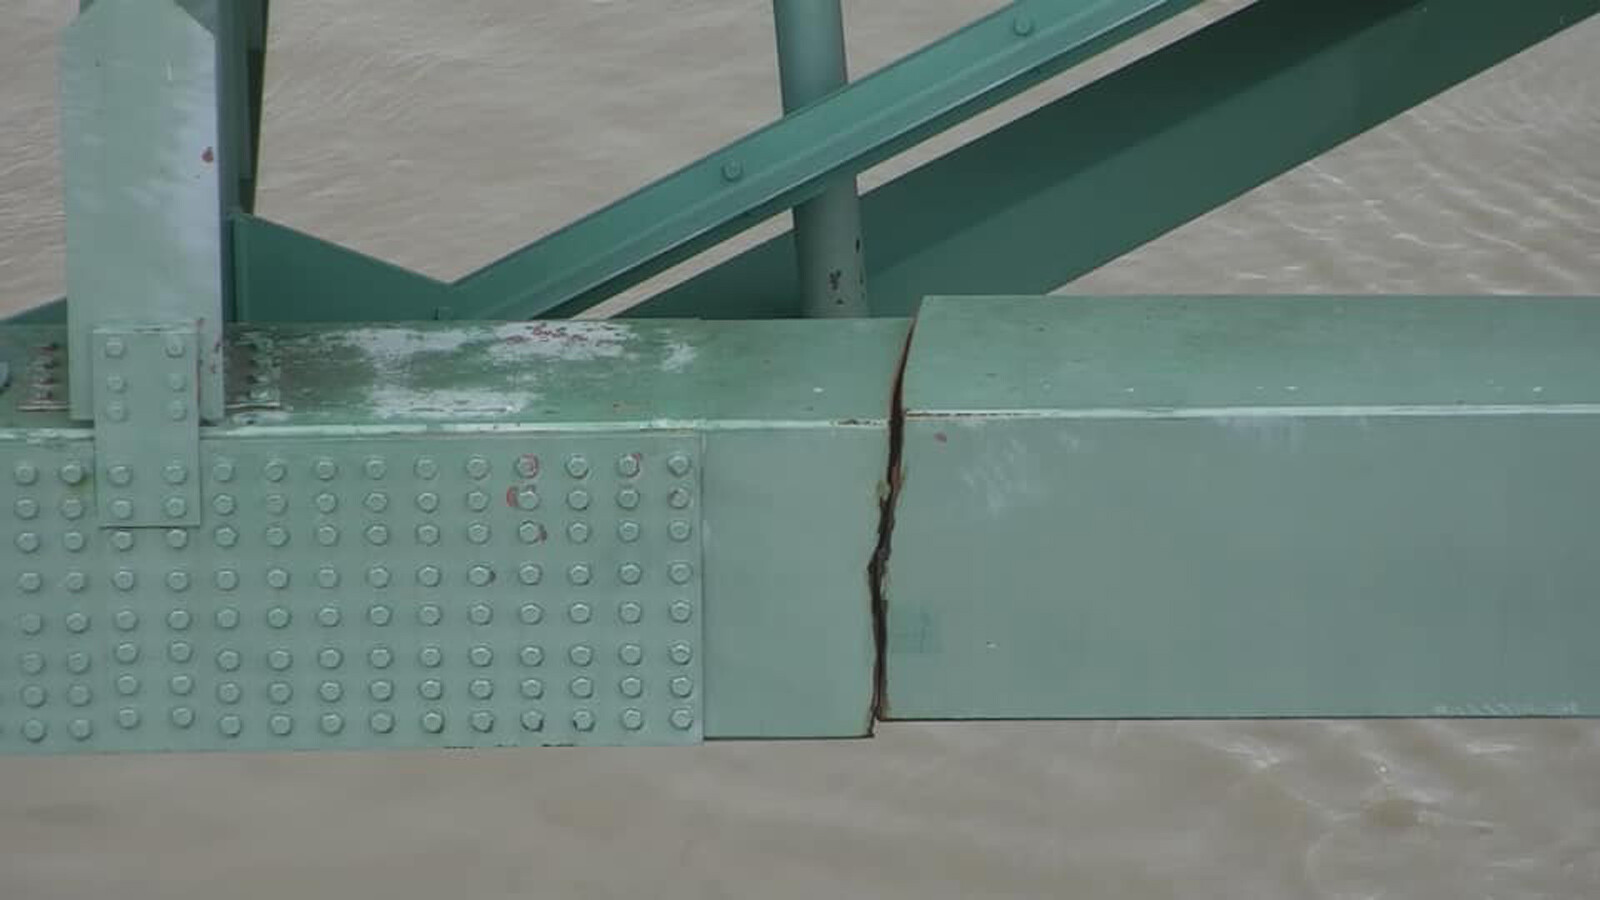 A vital Memphis bridge shut down since May due to a structural crack has fully reopened